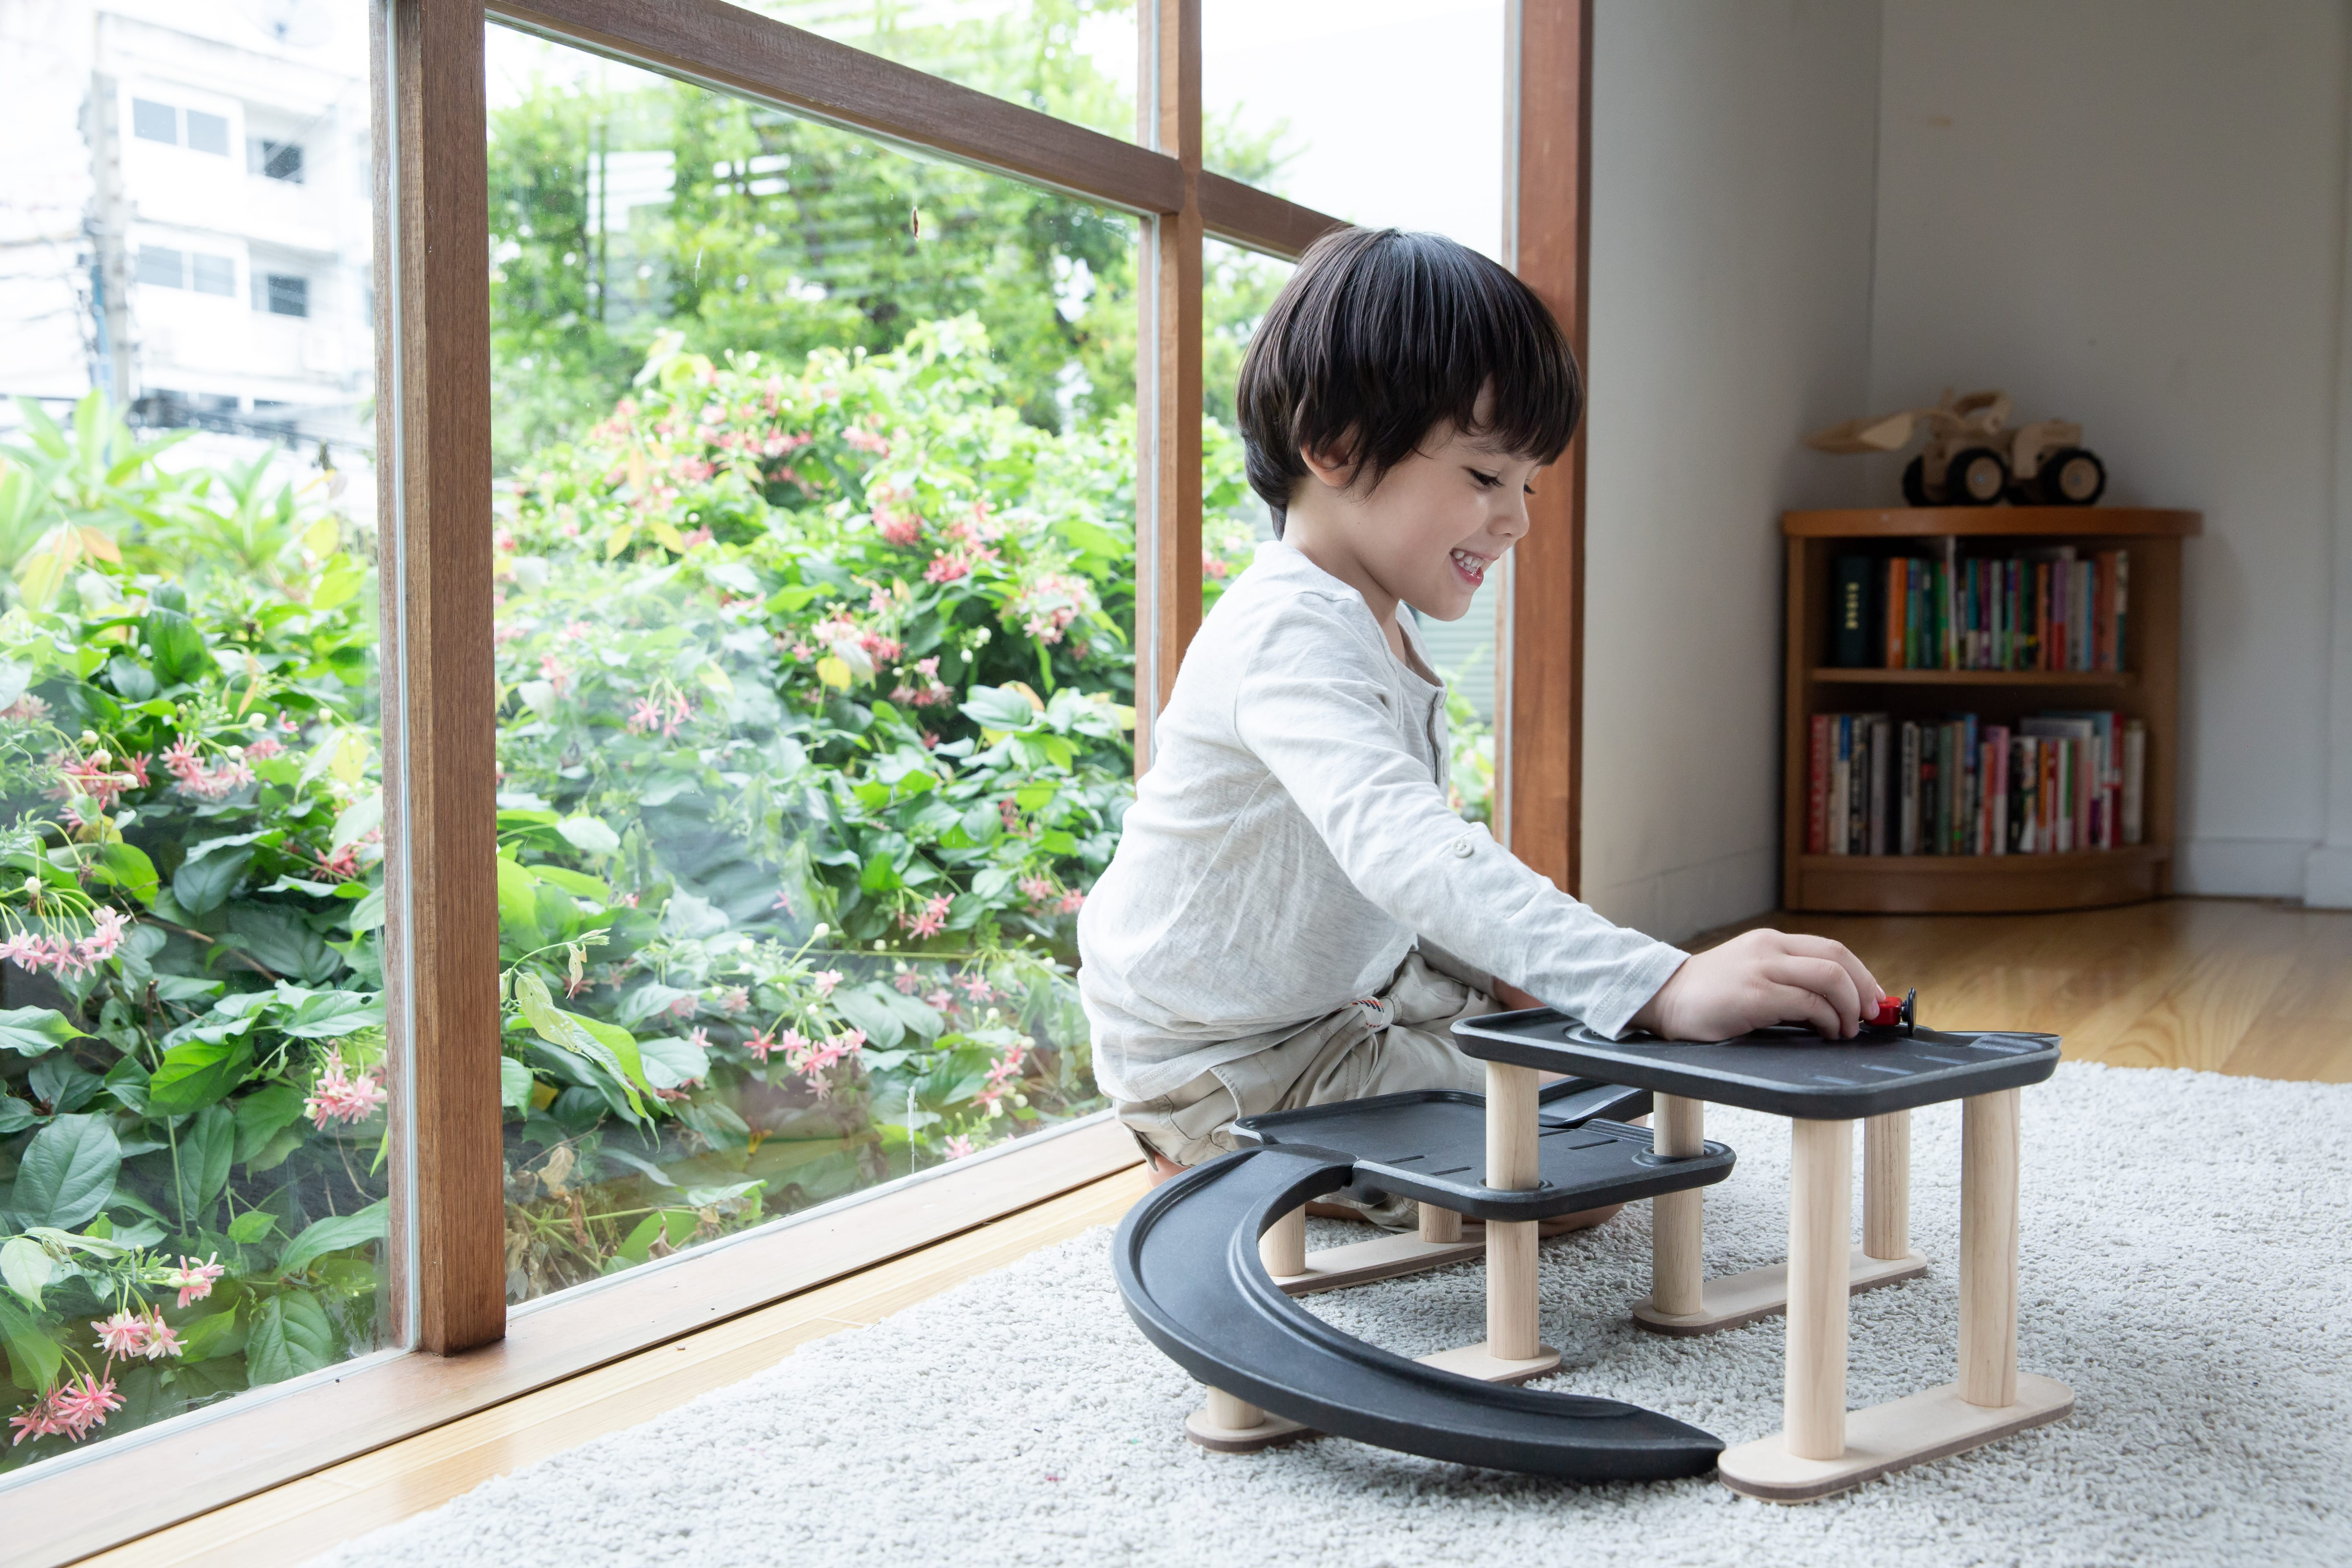 6270_PlanToys_RACE_N_PLAY_PARKING_GARAGE_Pretend_Play_Imagination_Coordination_Social_Language_and_Communications_Fine_Motor_3yrs_Wooden_toys_Education_toys_Safety_Toys_Non-toxic_4.jpg